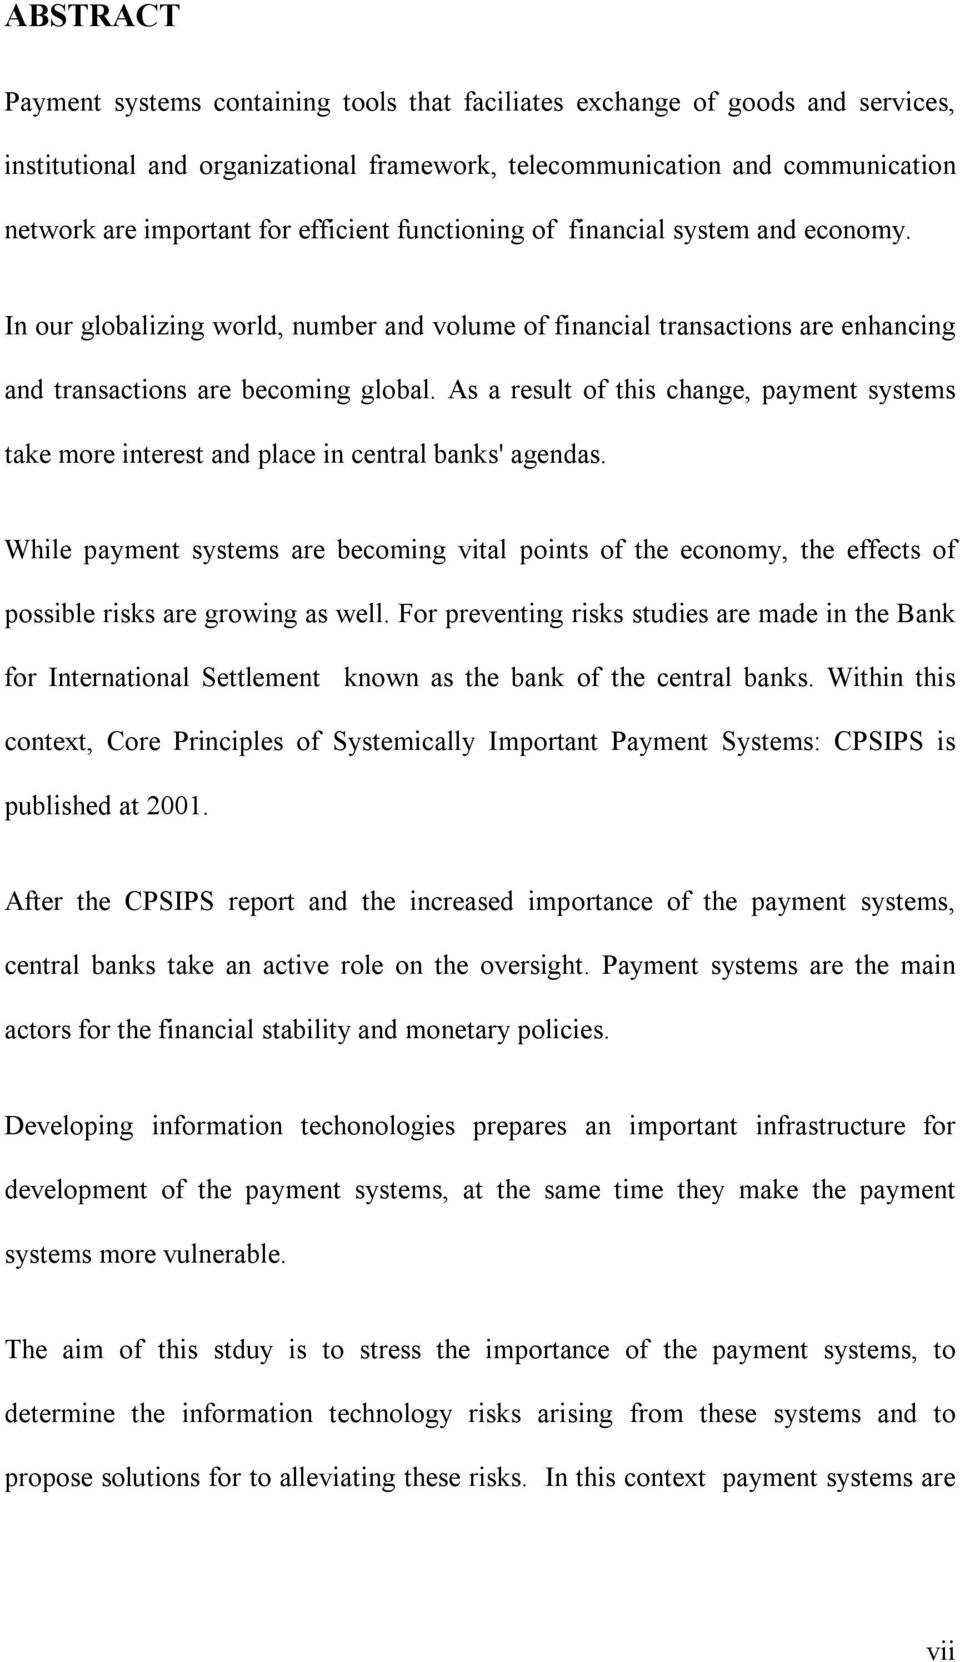 As a result of this change, payment systems take more interest and place in central banks' agendas.